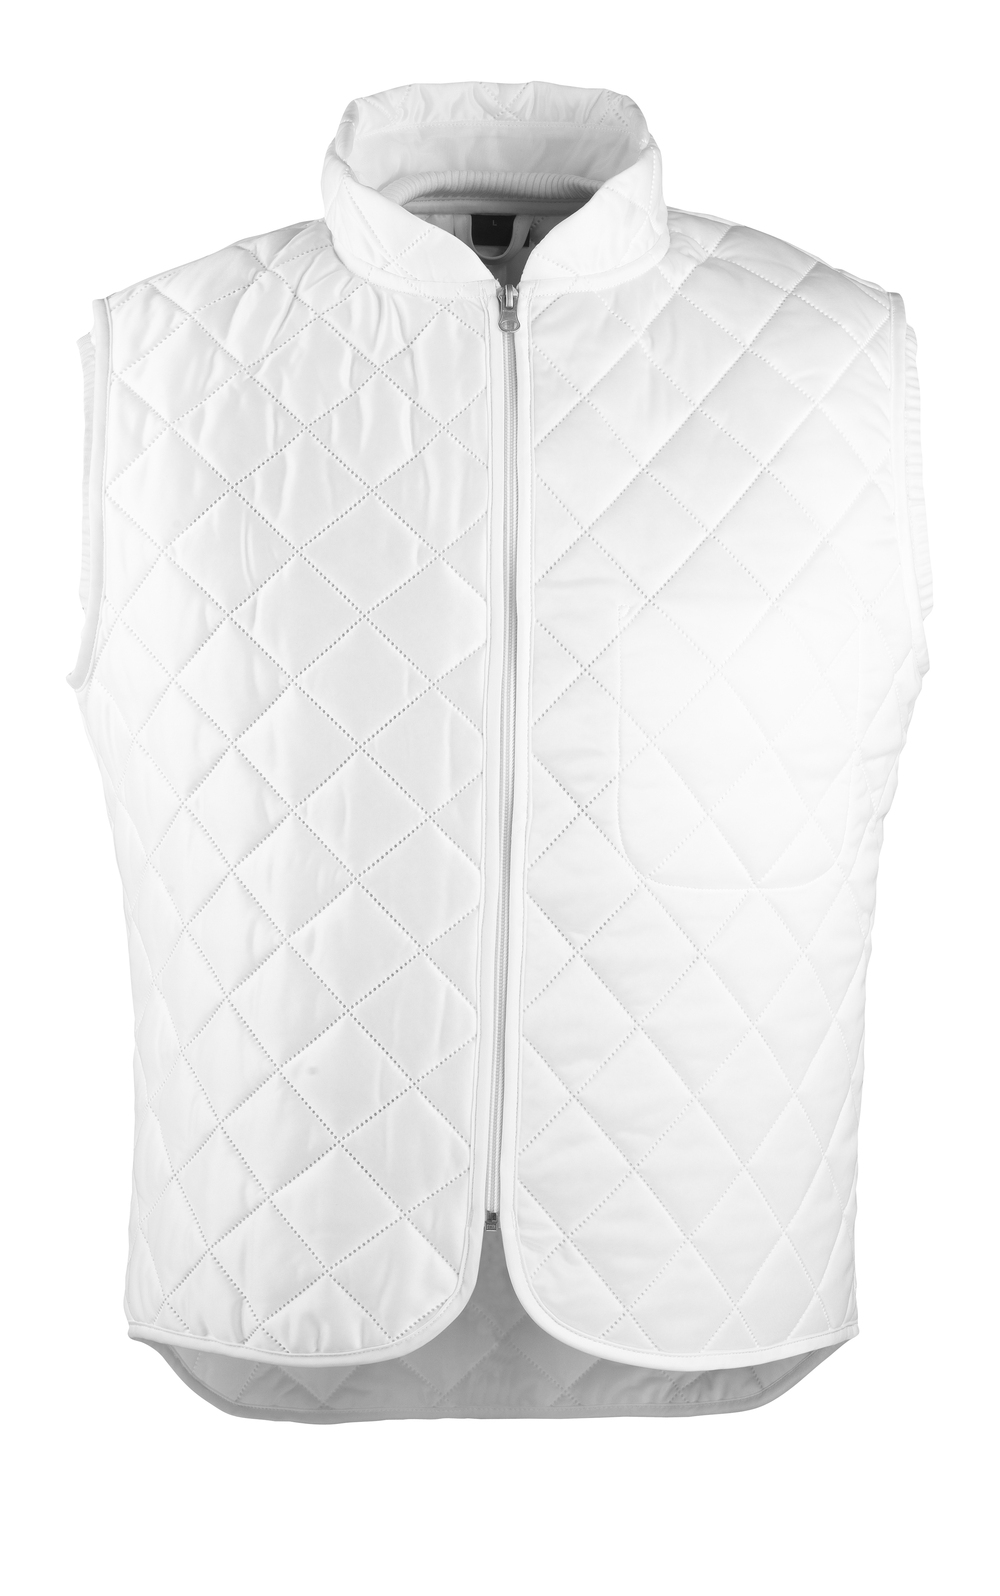 13648-707-06 Thermal Gilet - white